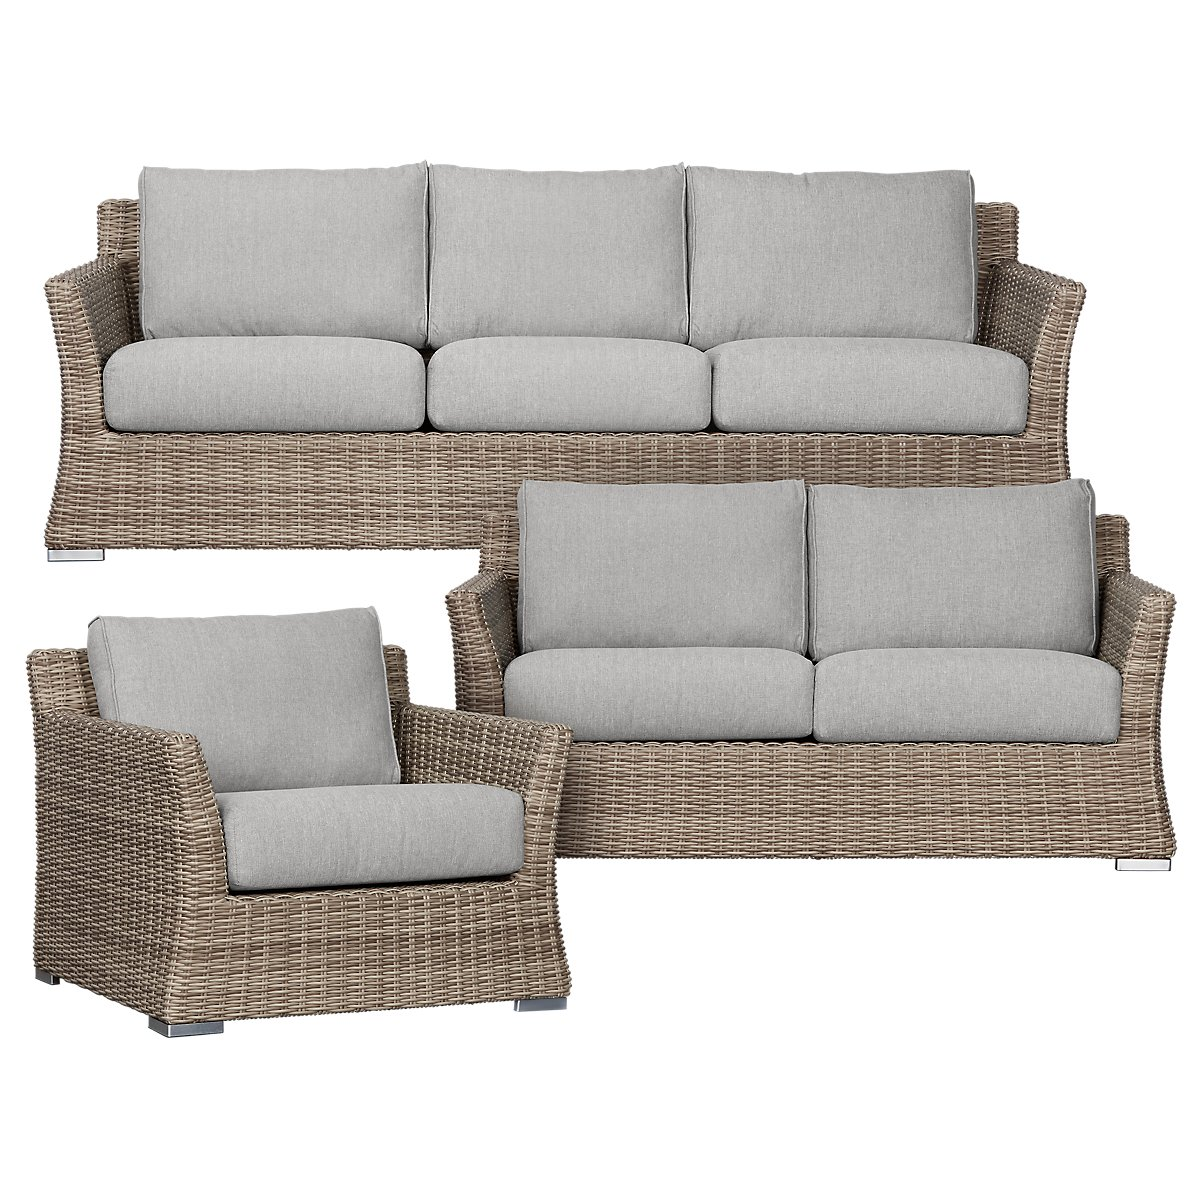 City furniture raleigh gray woven outdoor living room set for Living room furniture sets raleigh nc